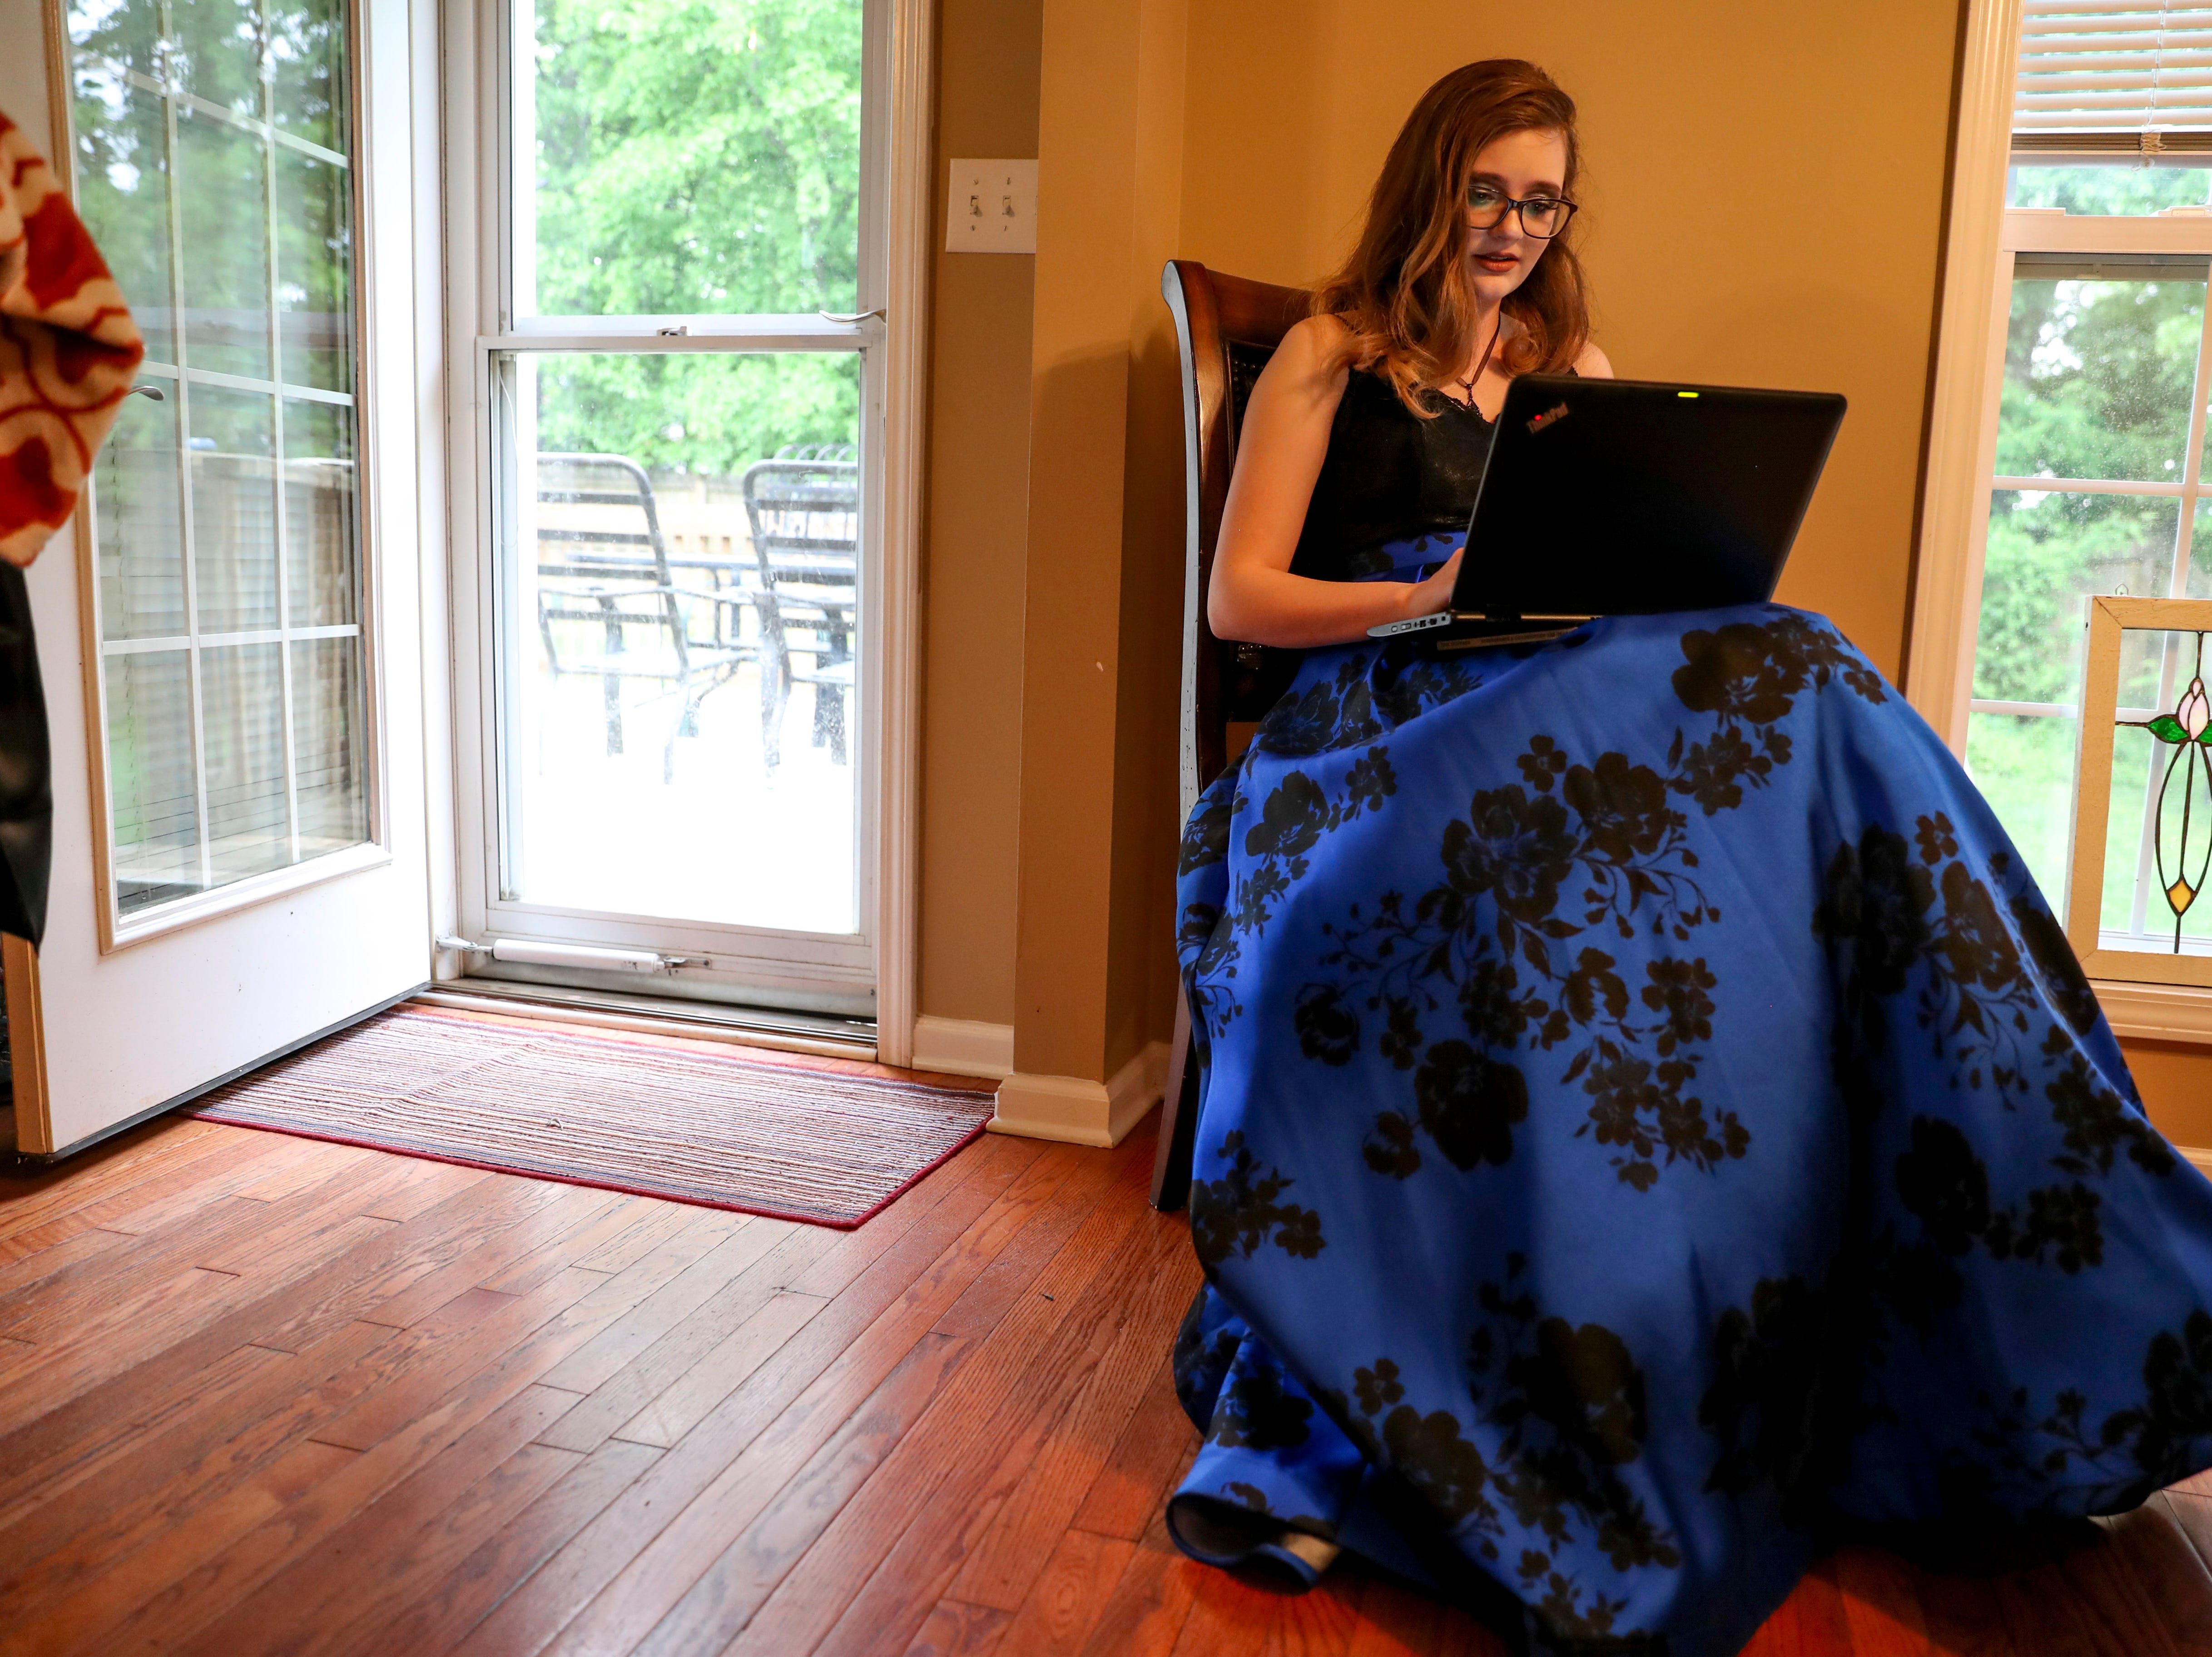 Madison Russell takes the time between makeup and putting on her dress and when she had to leave for prom to work on an essay for her AP Language class at the Russell household in Clarksville, Tenn., on Saturday, May 4, 2019.